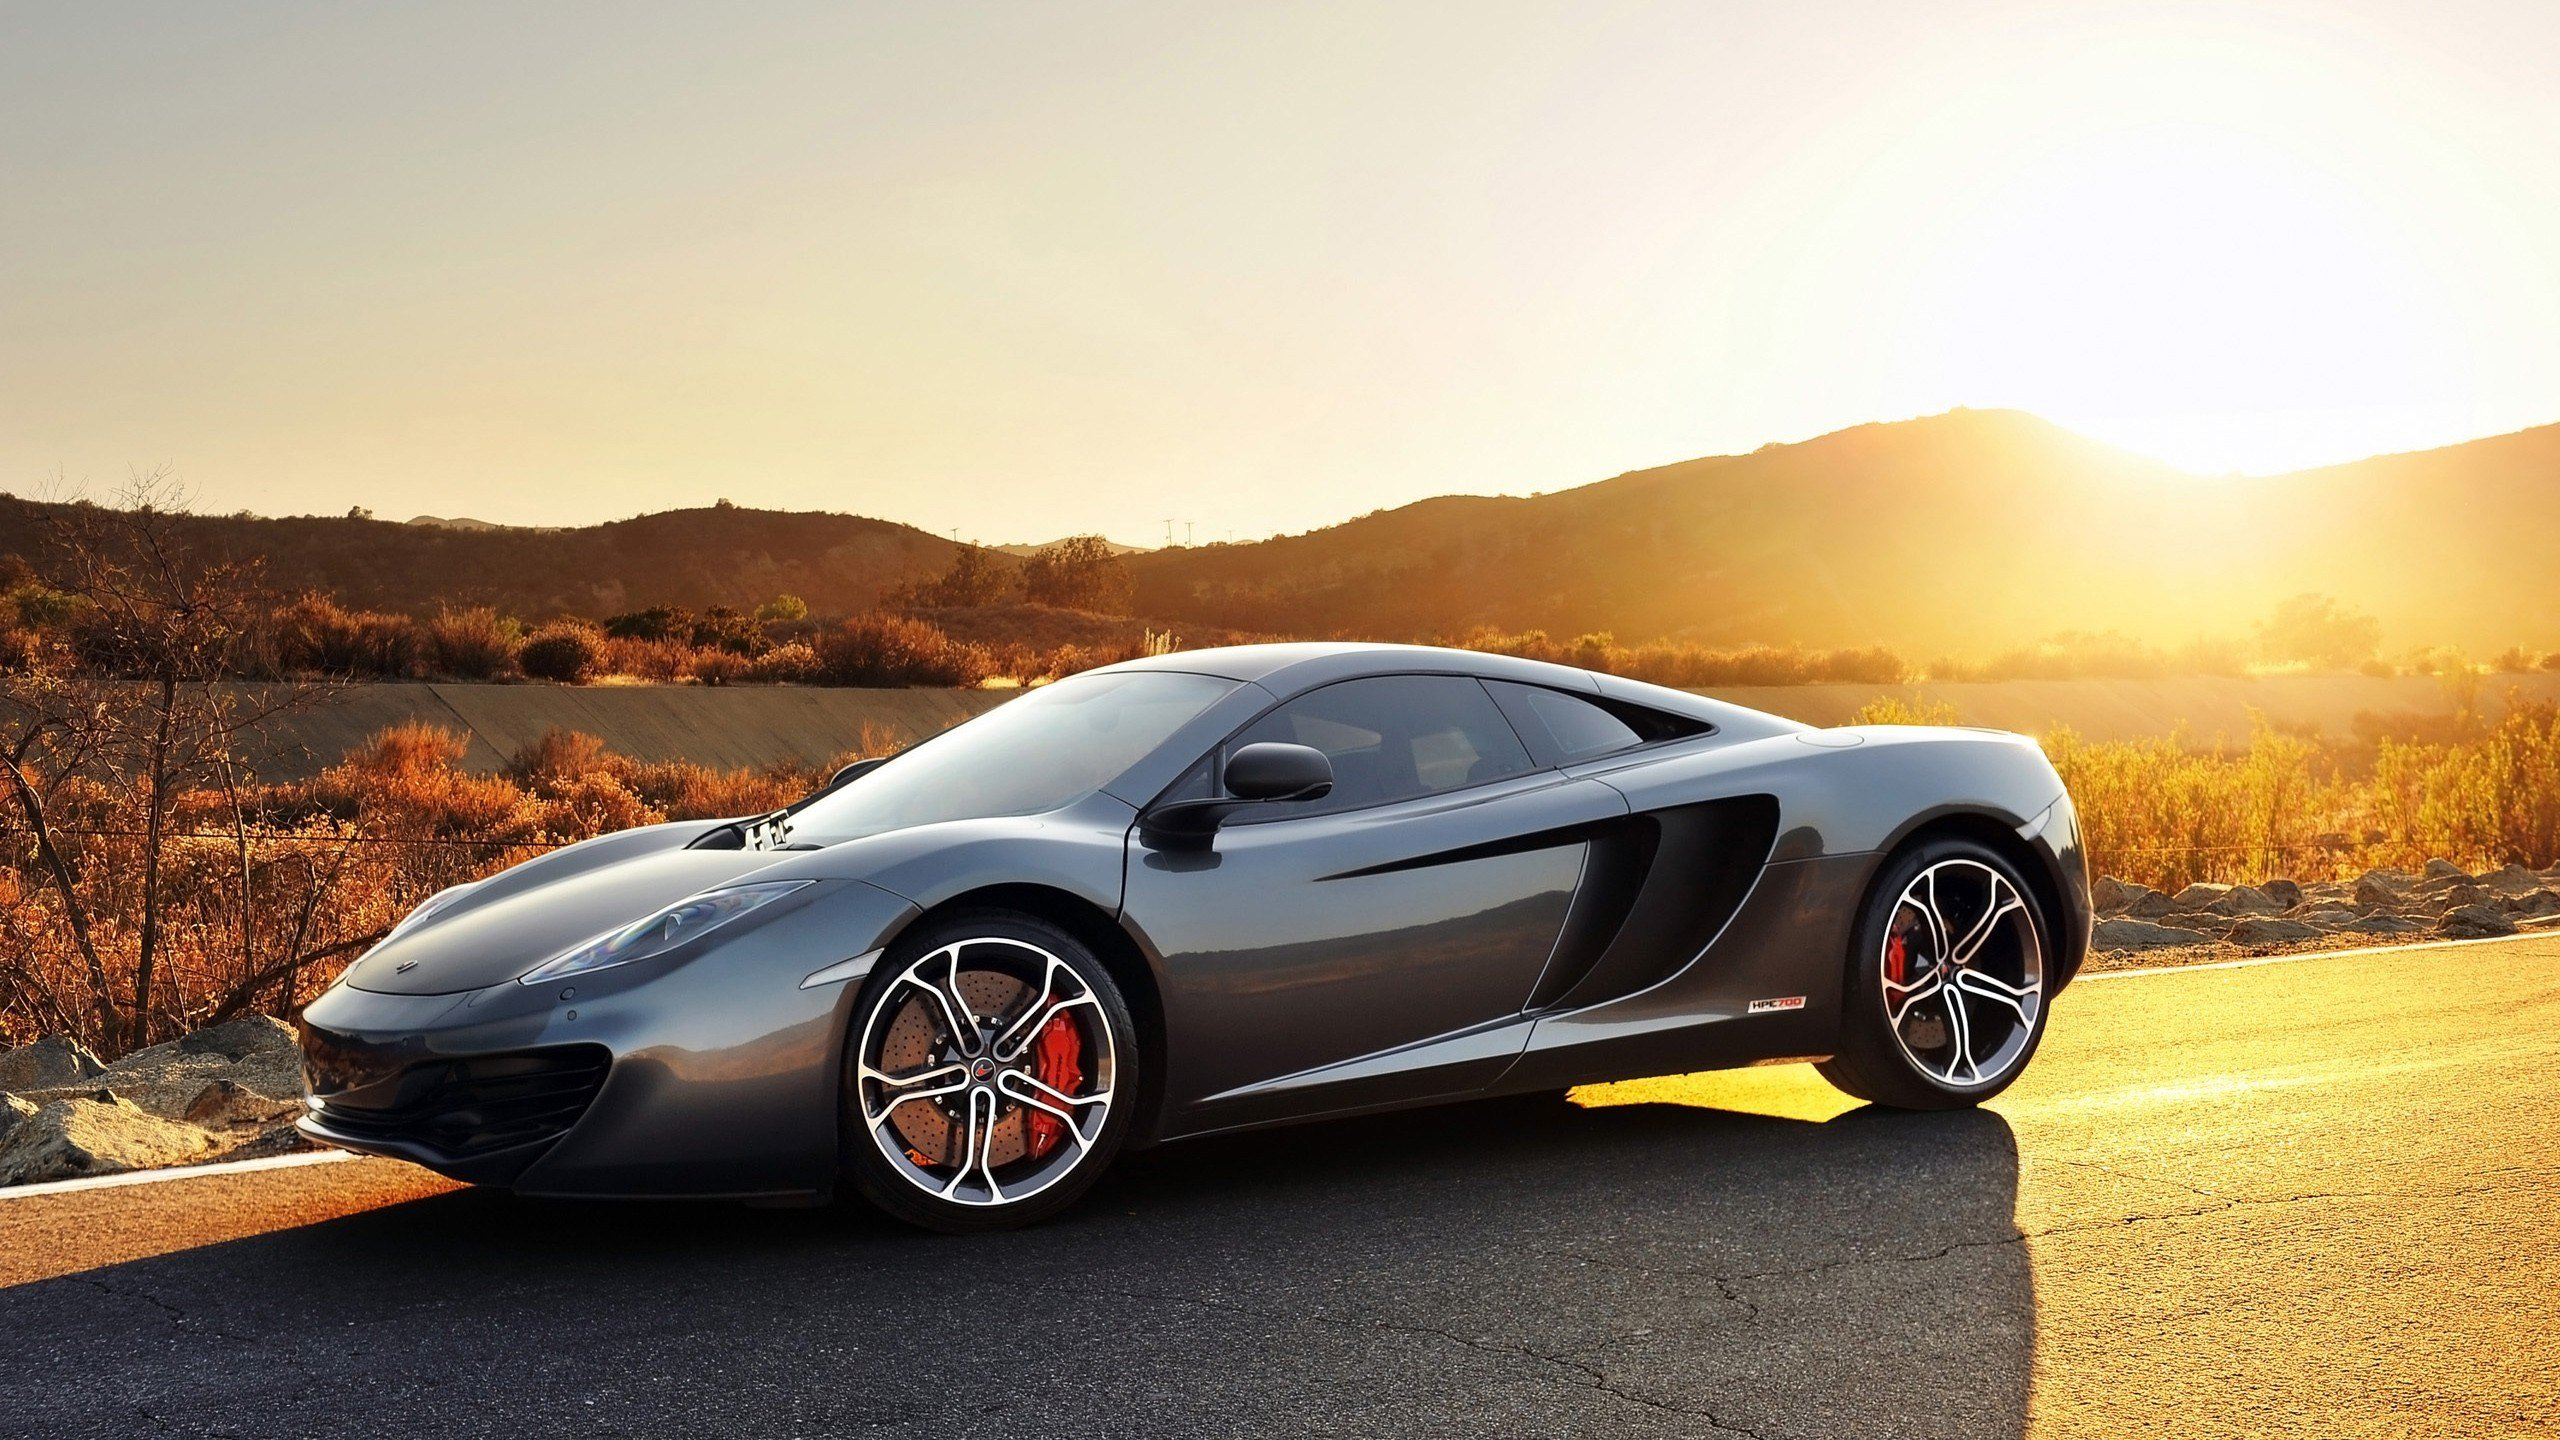 New 2013 Mclaren Mp4 12C Hpe700 By Hennessey Wallpaper Hd On This Month